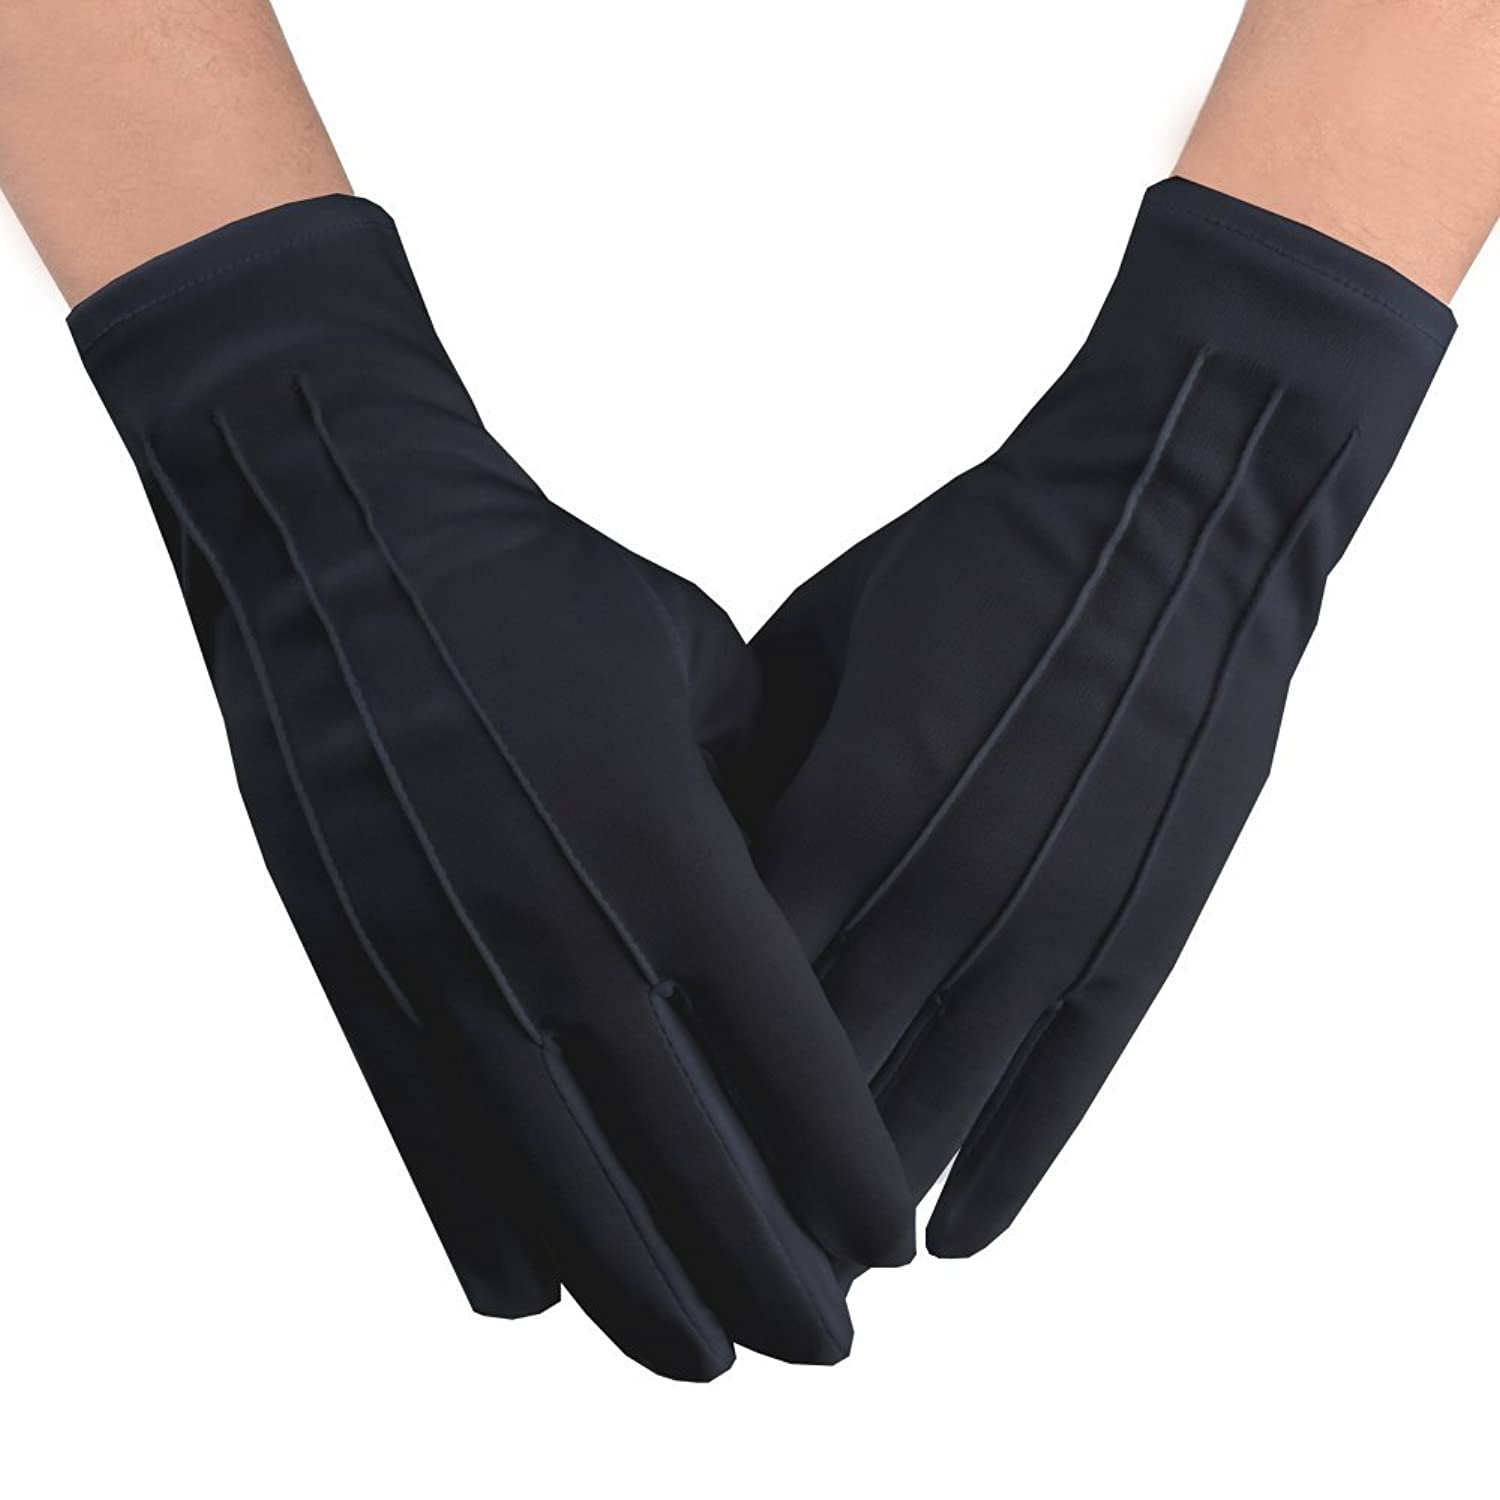 Victorian Men's Tuxedo, Tailcoats, Formalwear Guide Men Black Cotton Gloves  AT vintagedancer.com